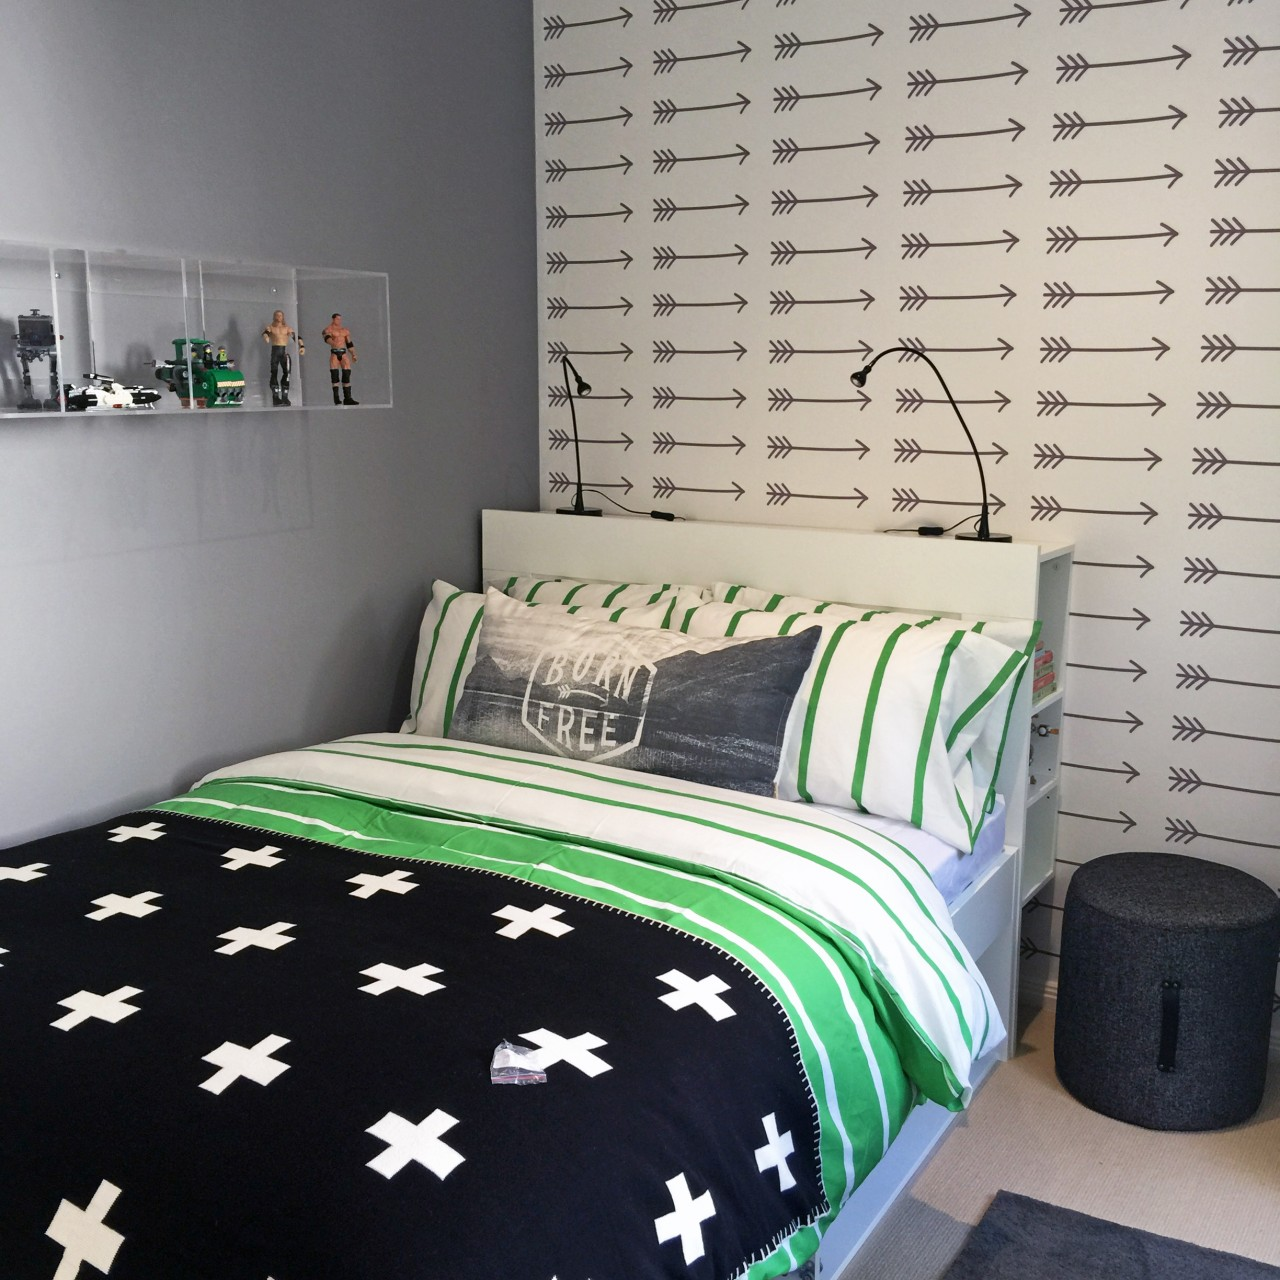 Arrows removable wallpaper Australia for walls in boy's bedroom